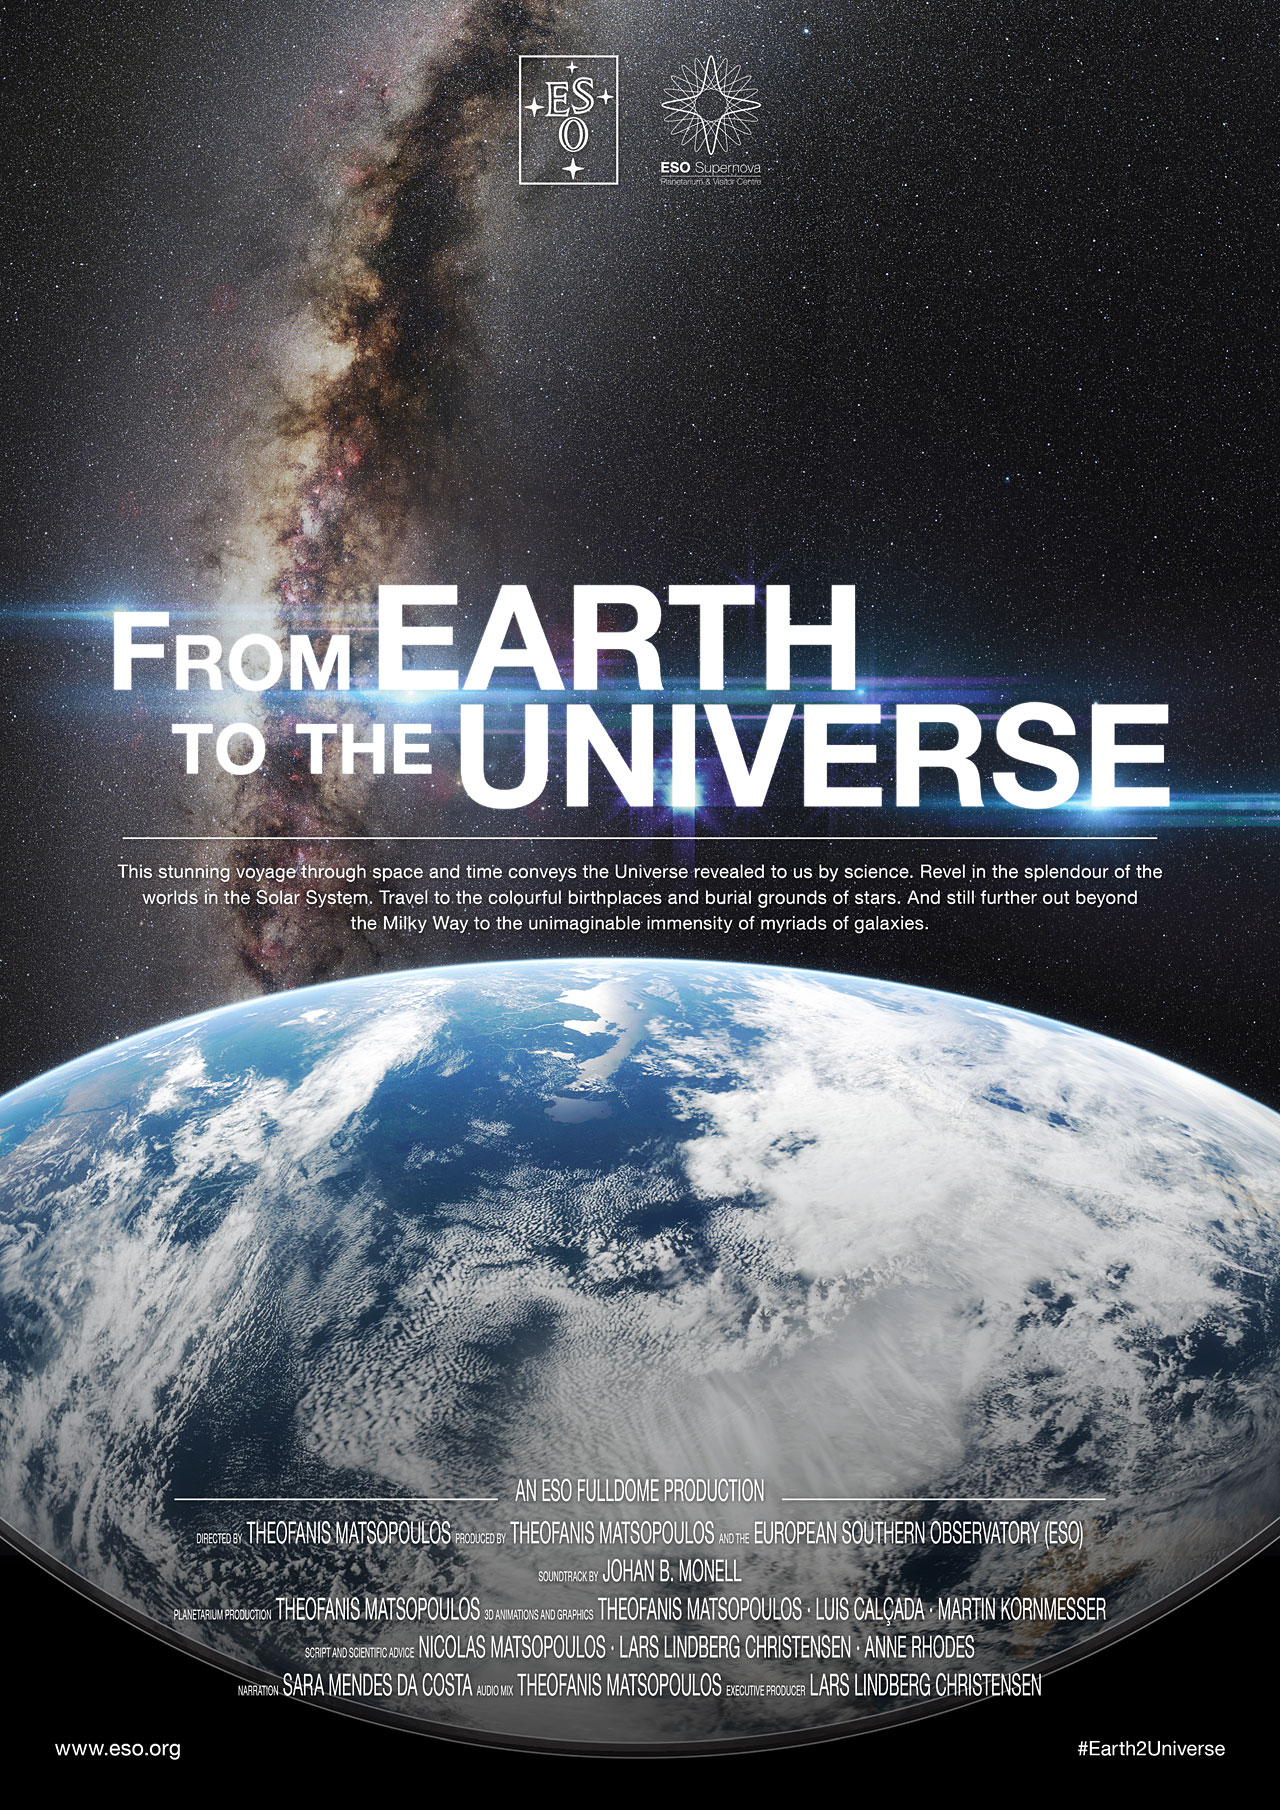 from earth to universe